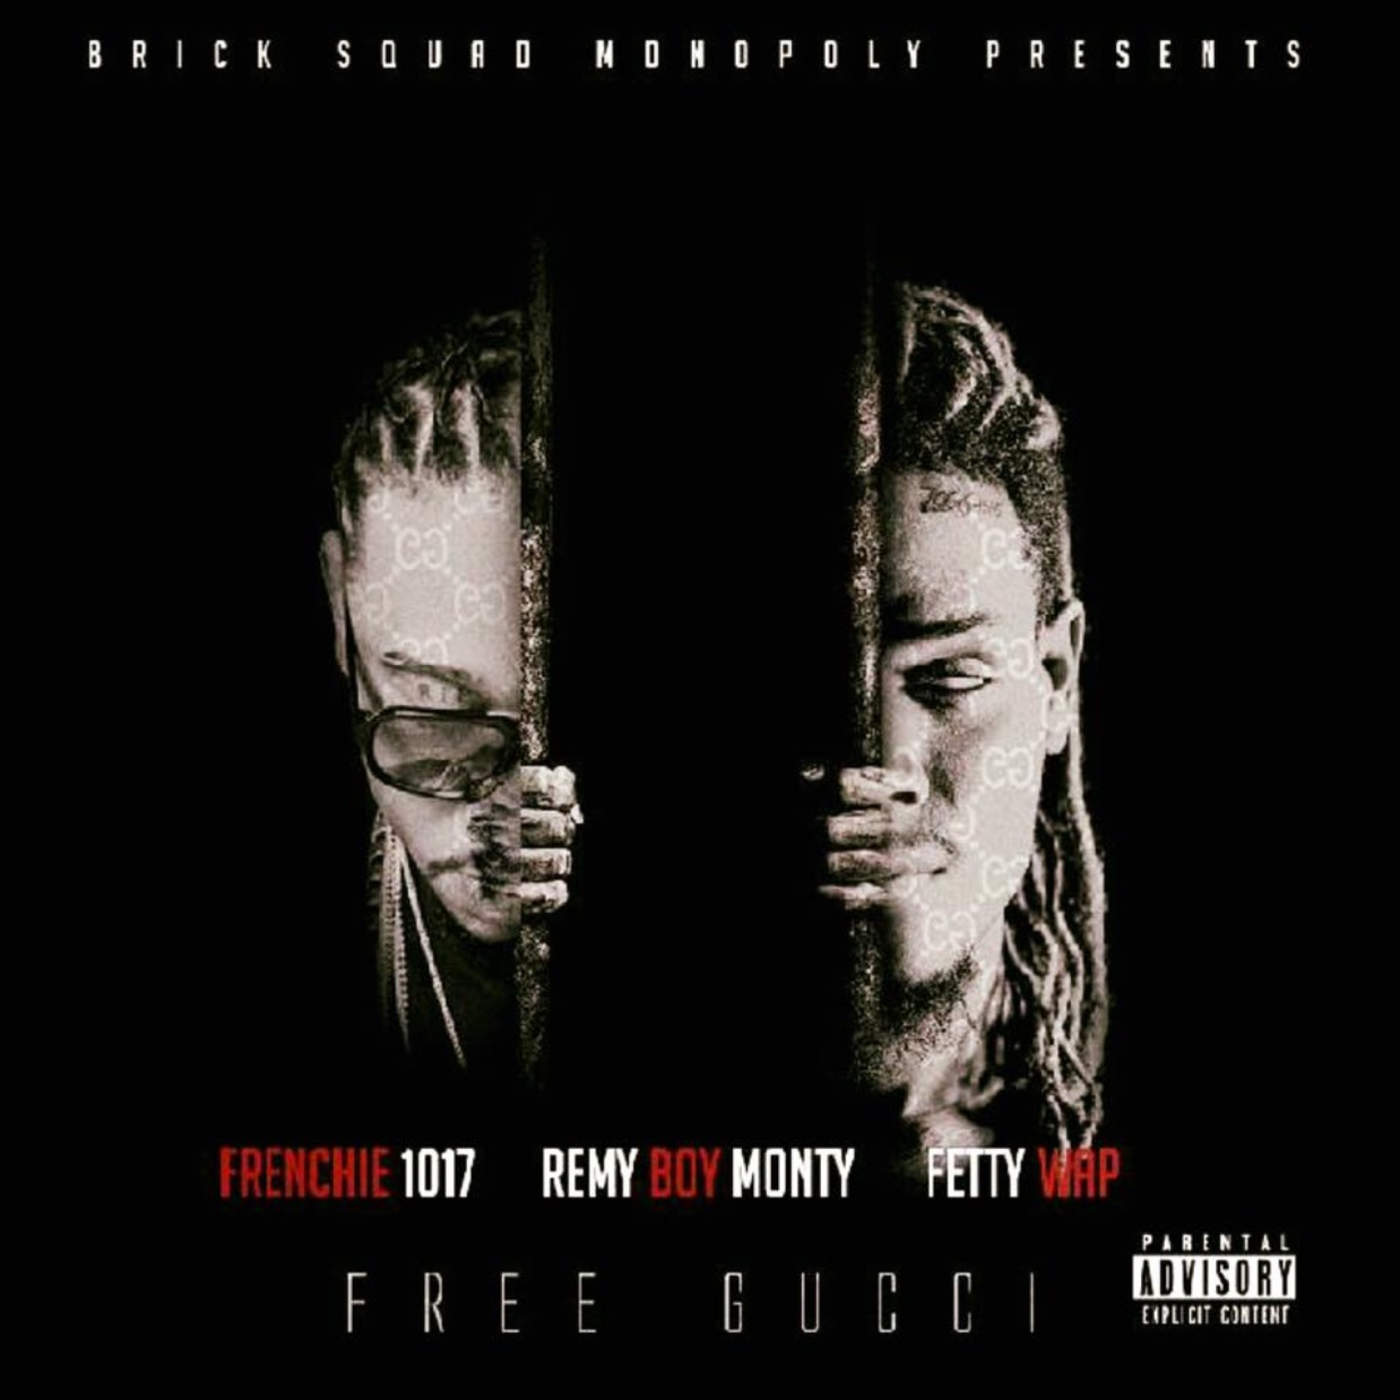 Frenchie 1017, Remy Boy Monty & Fetty Wap - Free Gucci - Single Cover